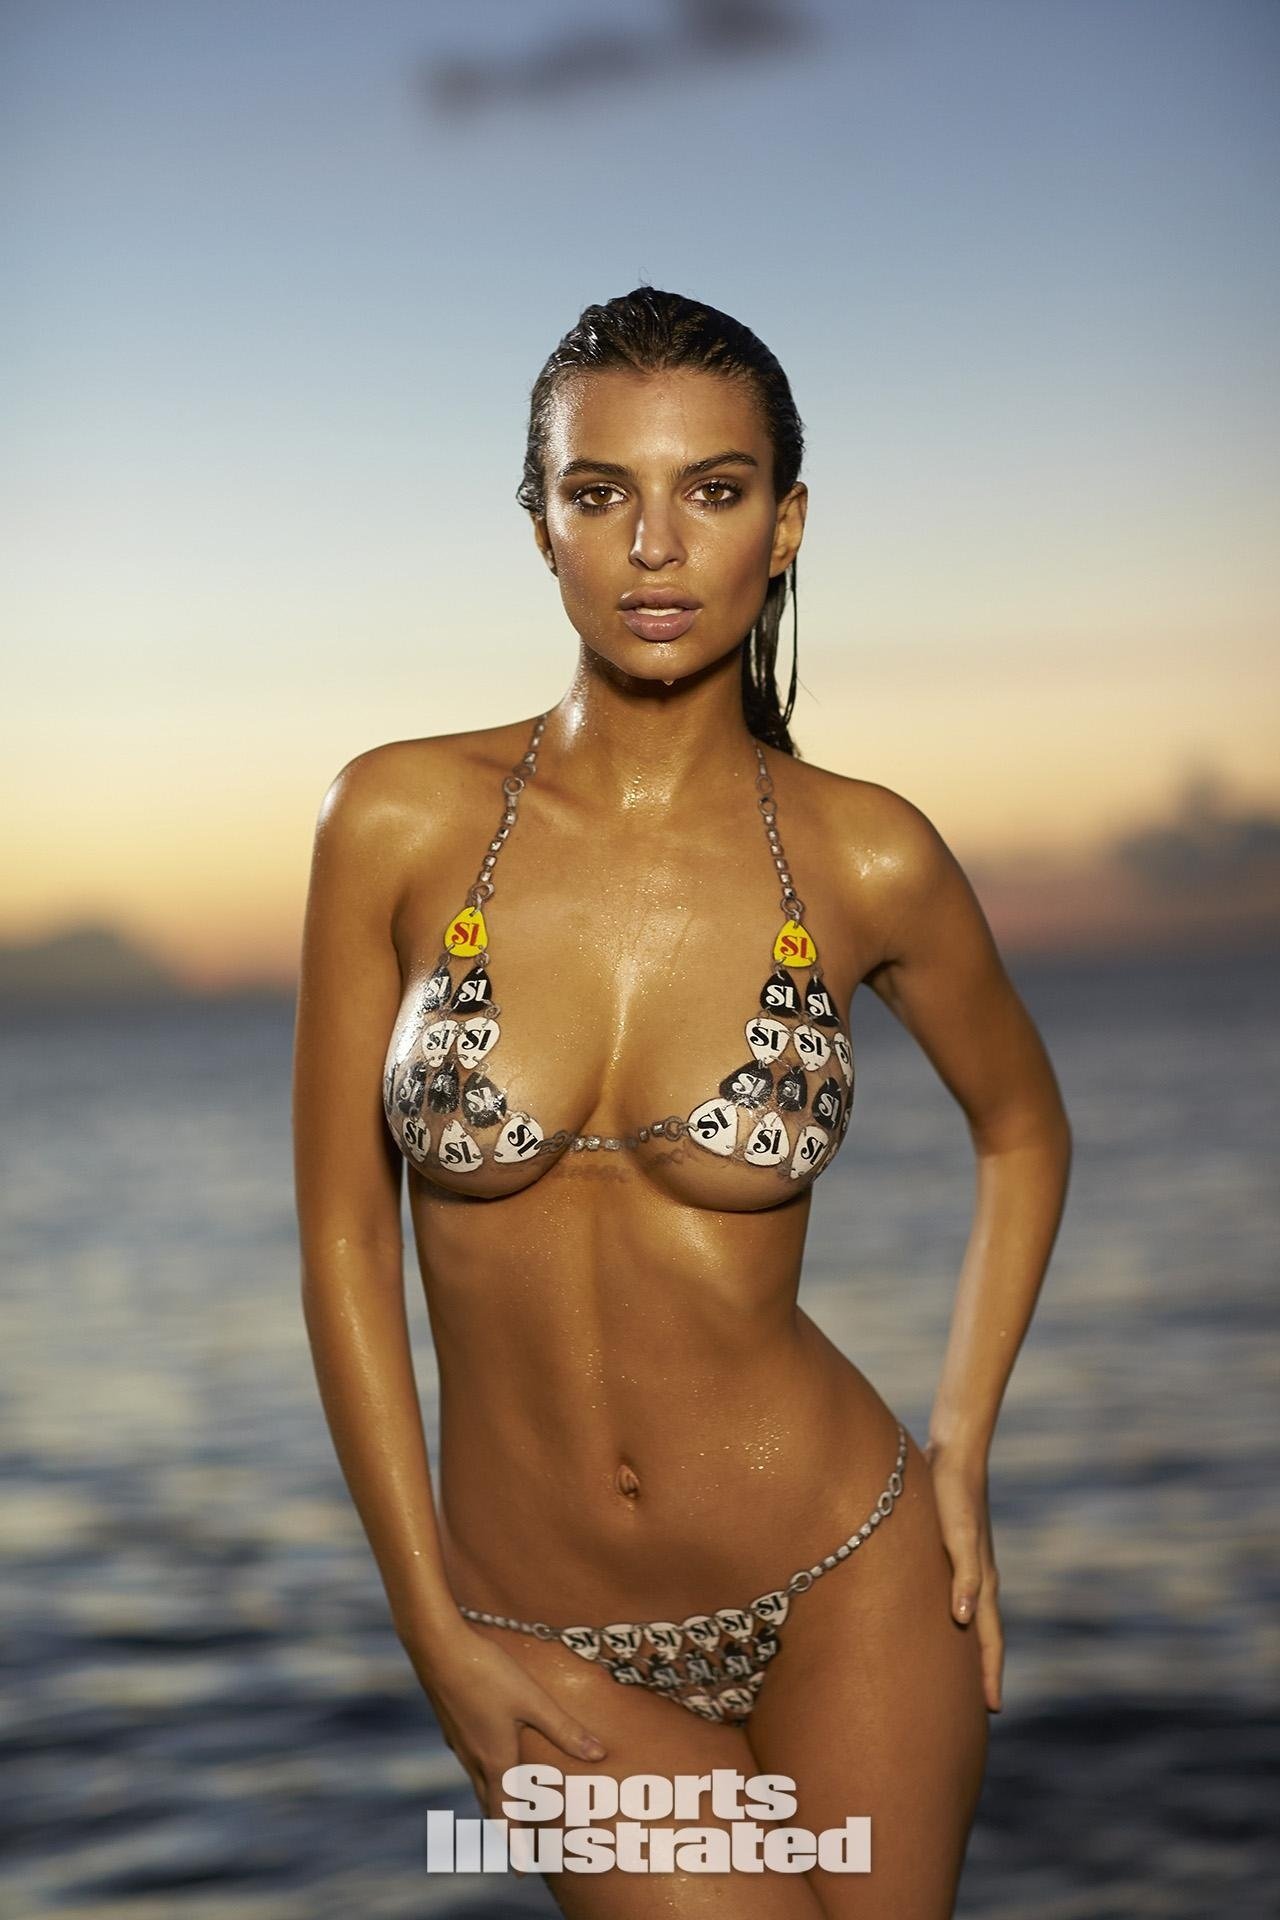 Emily Ratajkowski Bodypaint Sports Illustrated Itok Omyzxs Emily Ratajkowski